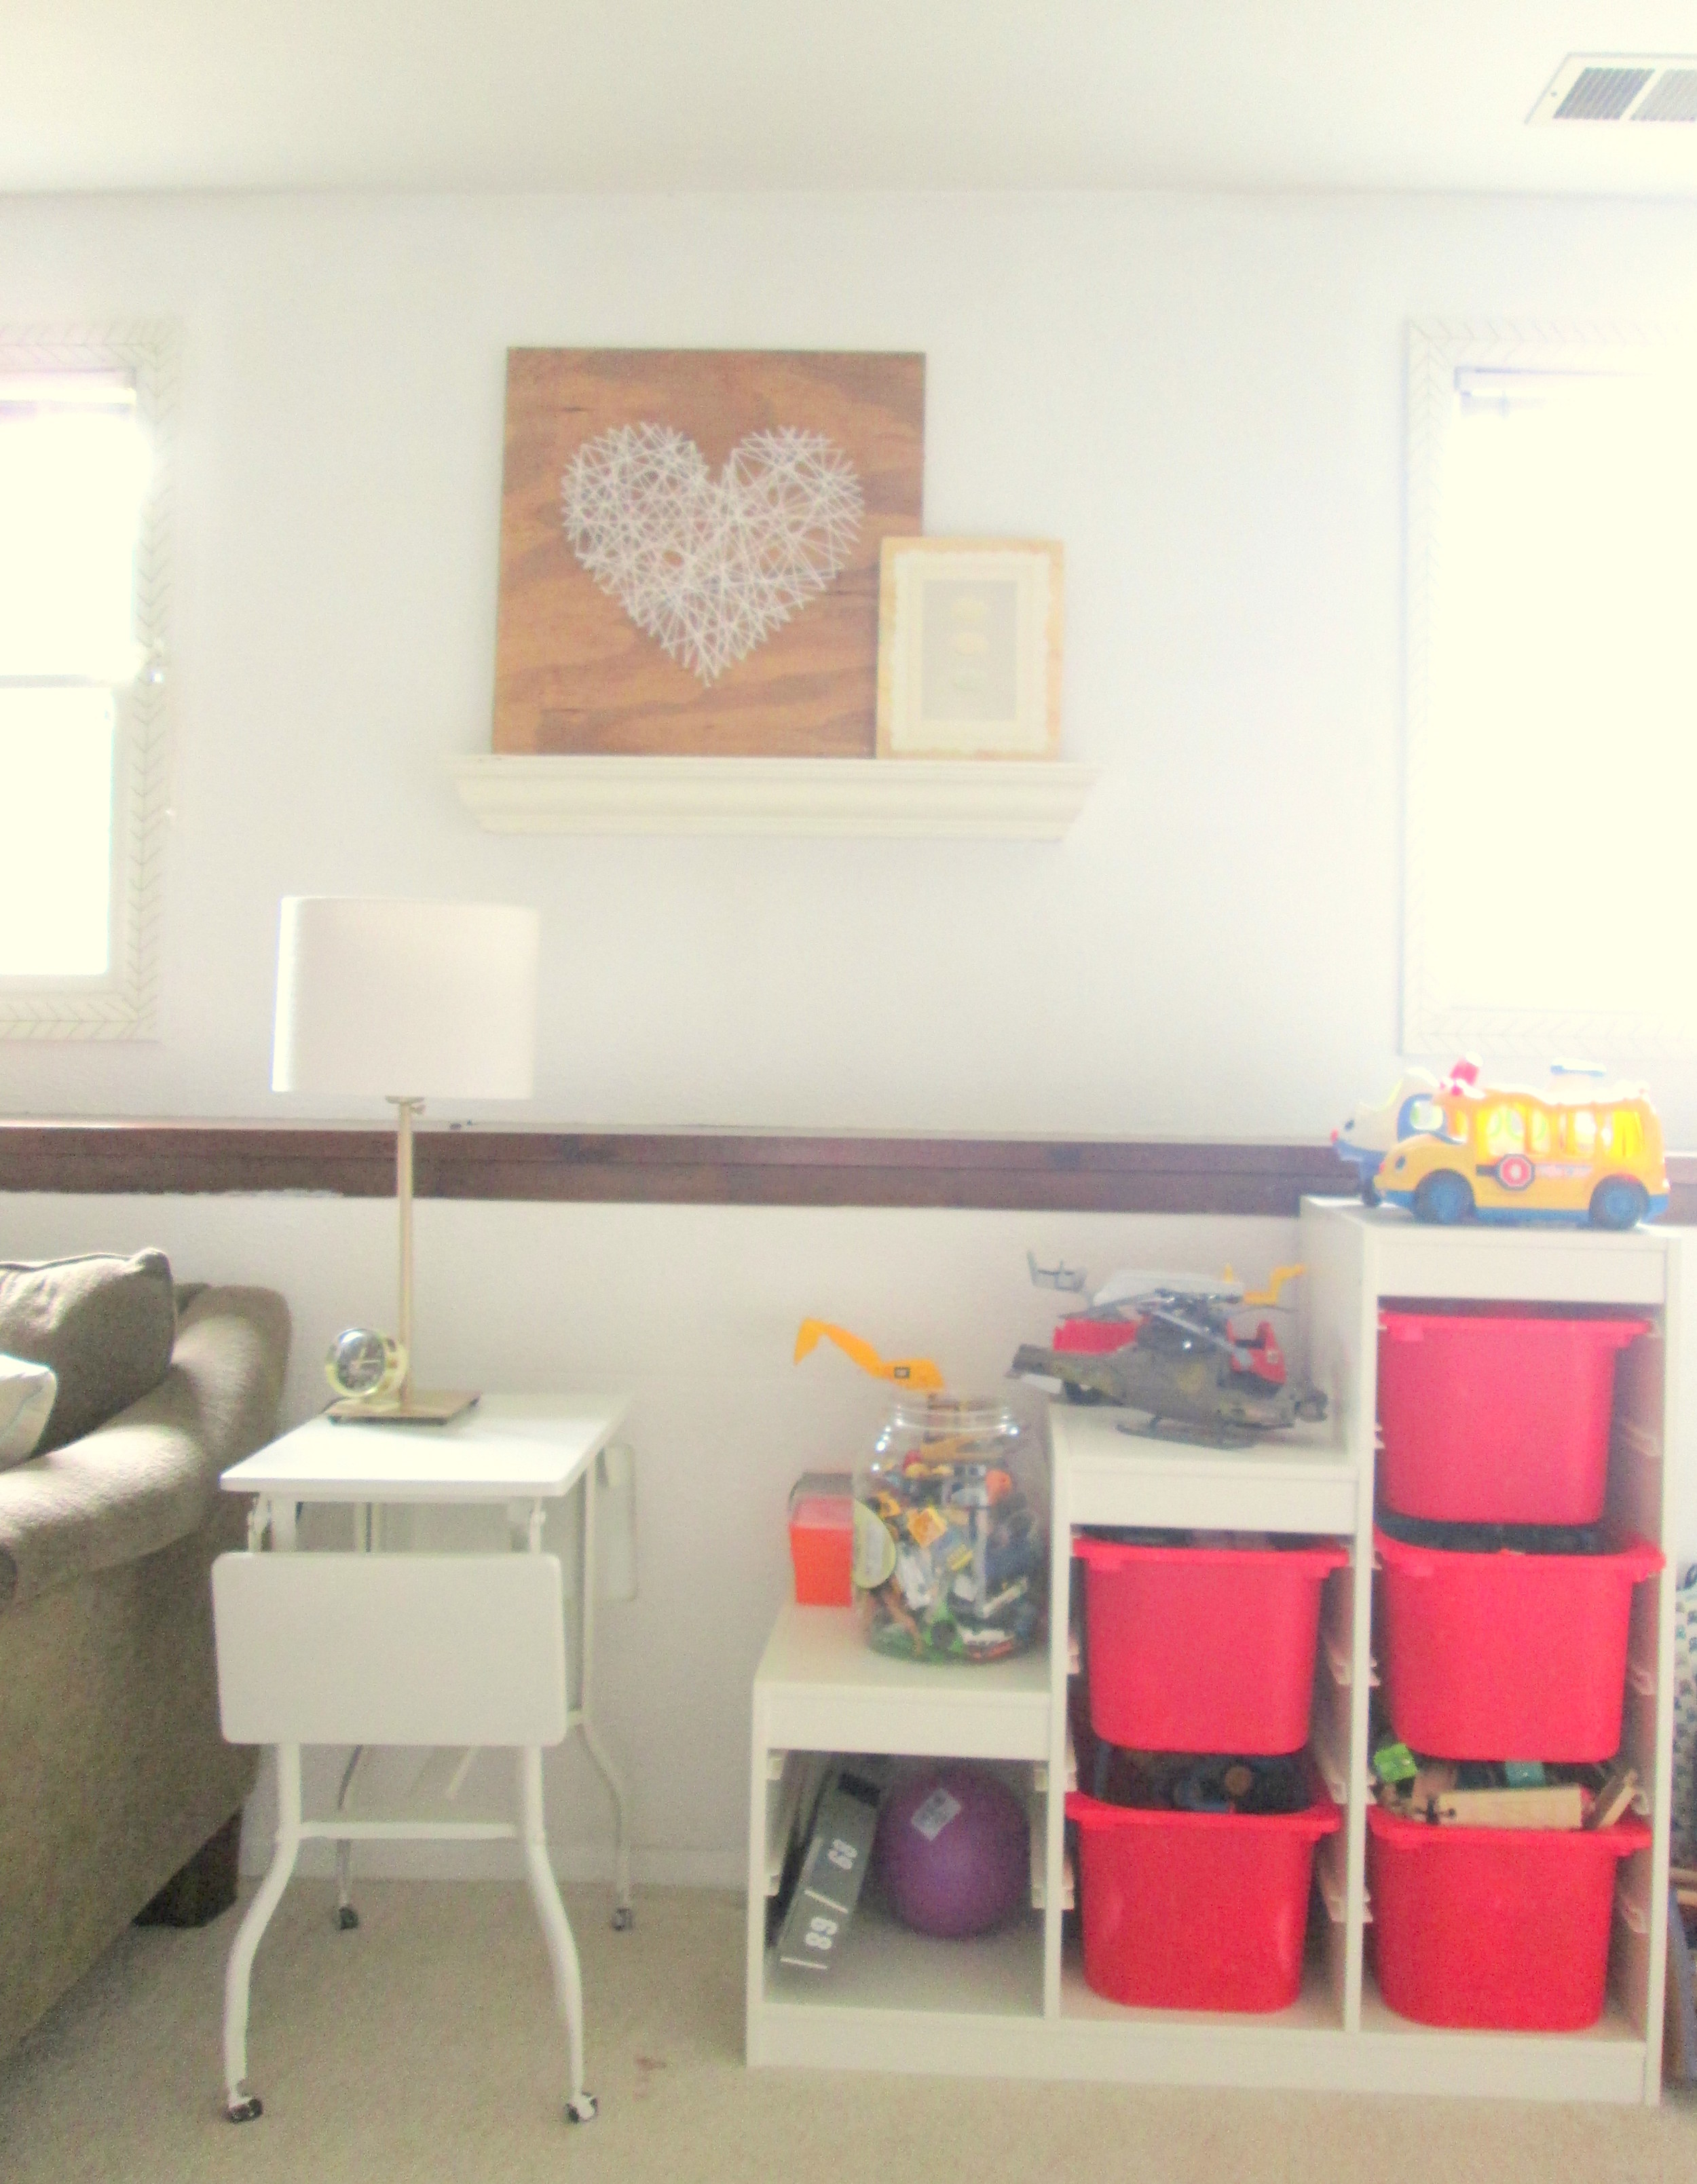 Before, with the IKEA TROFAST storage system